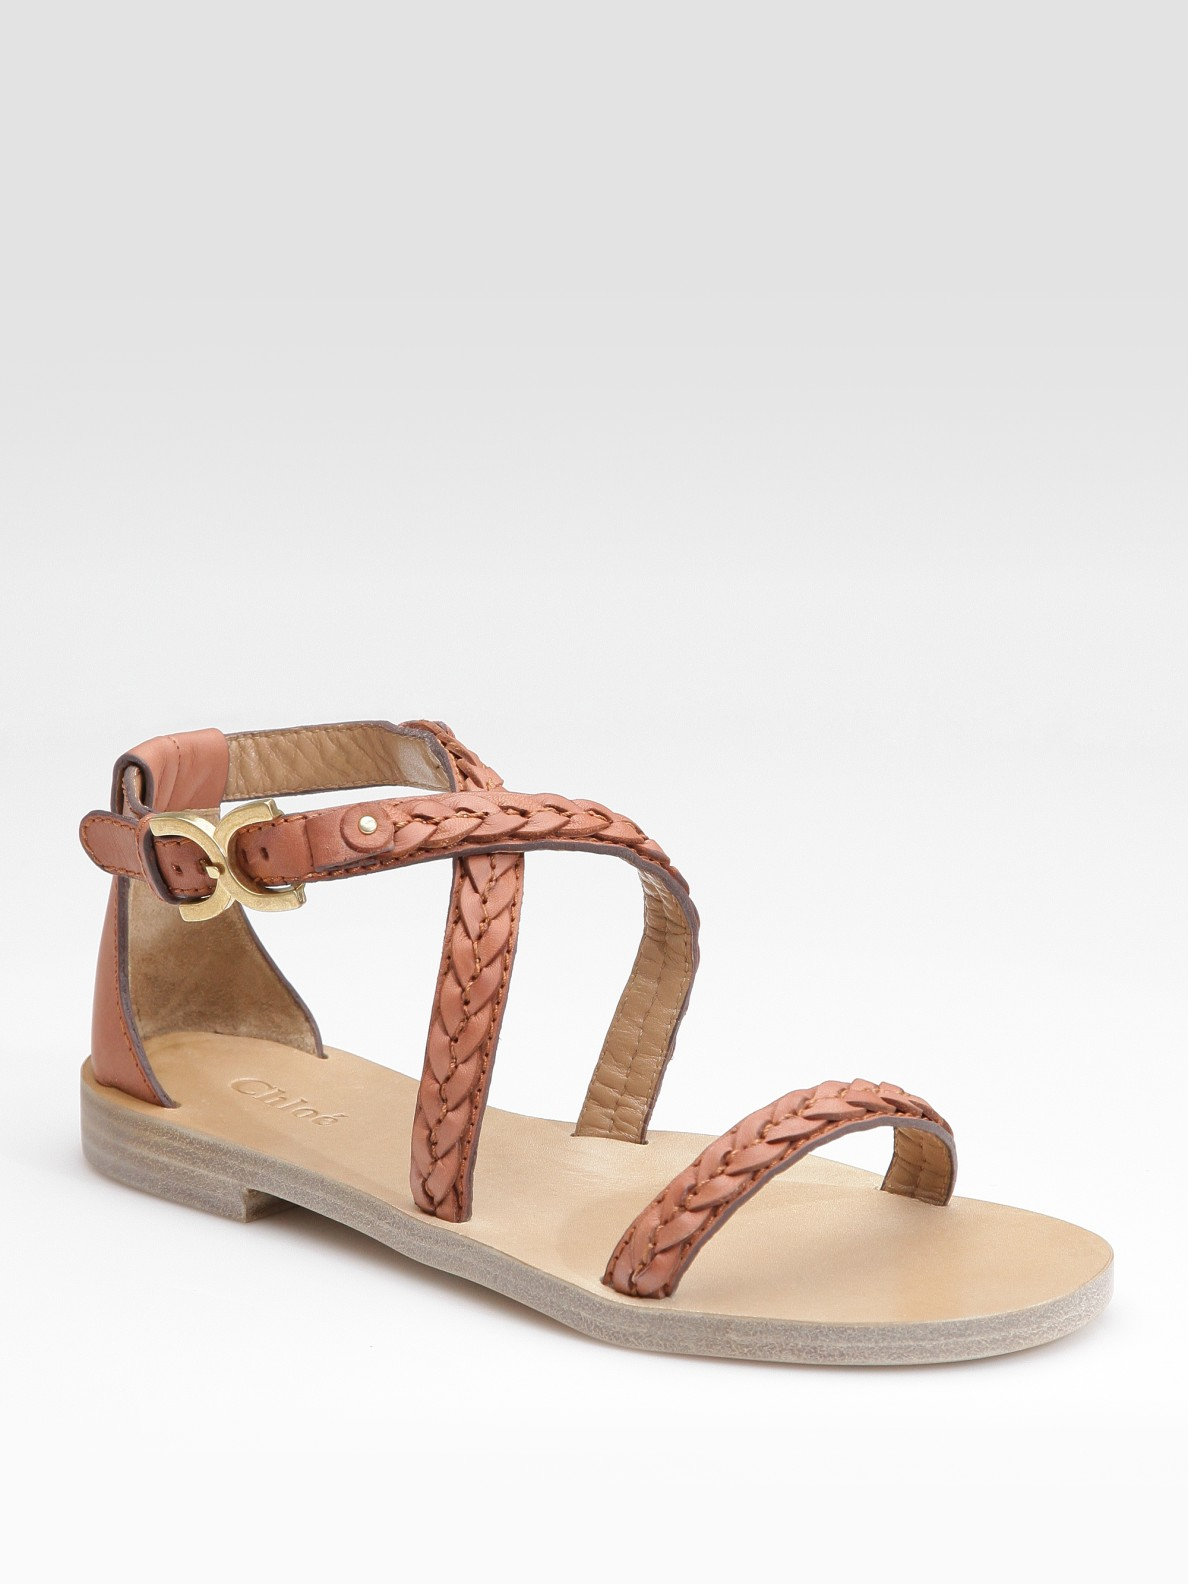 dfcd3a4f5d53 Lyst - Chloé Braided Leather Flat Sandals in Brown